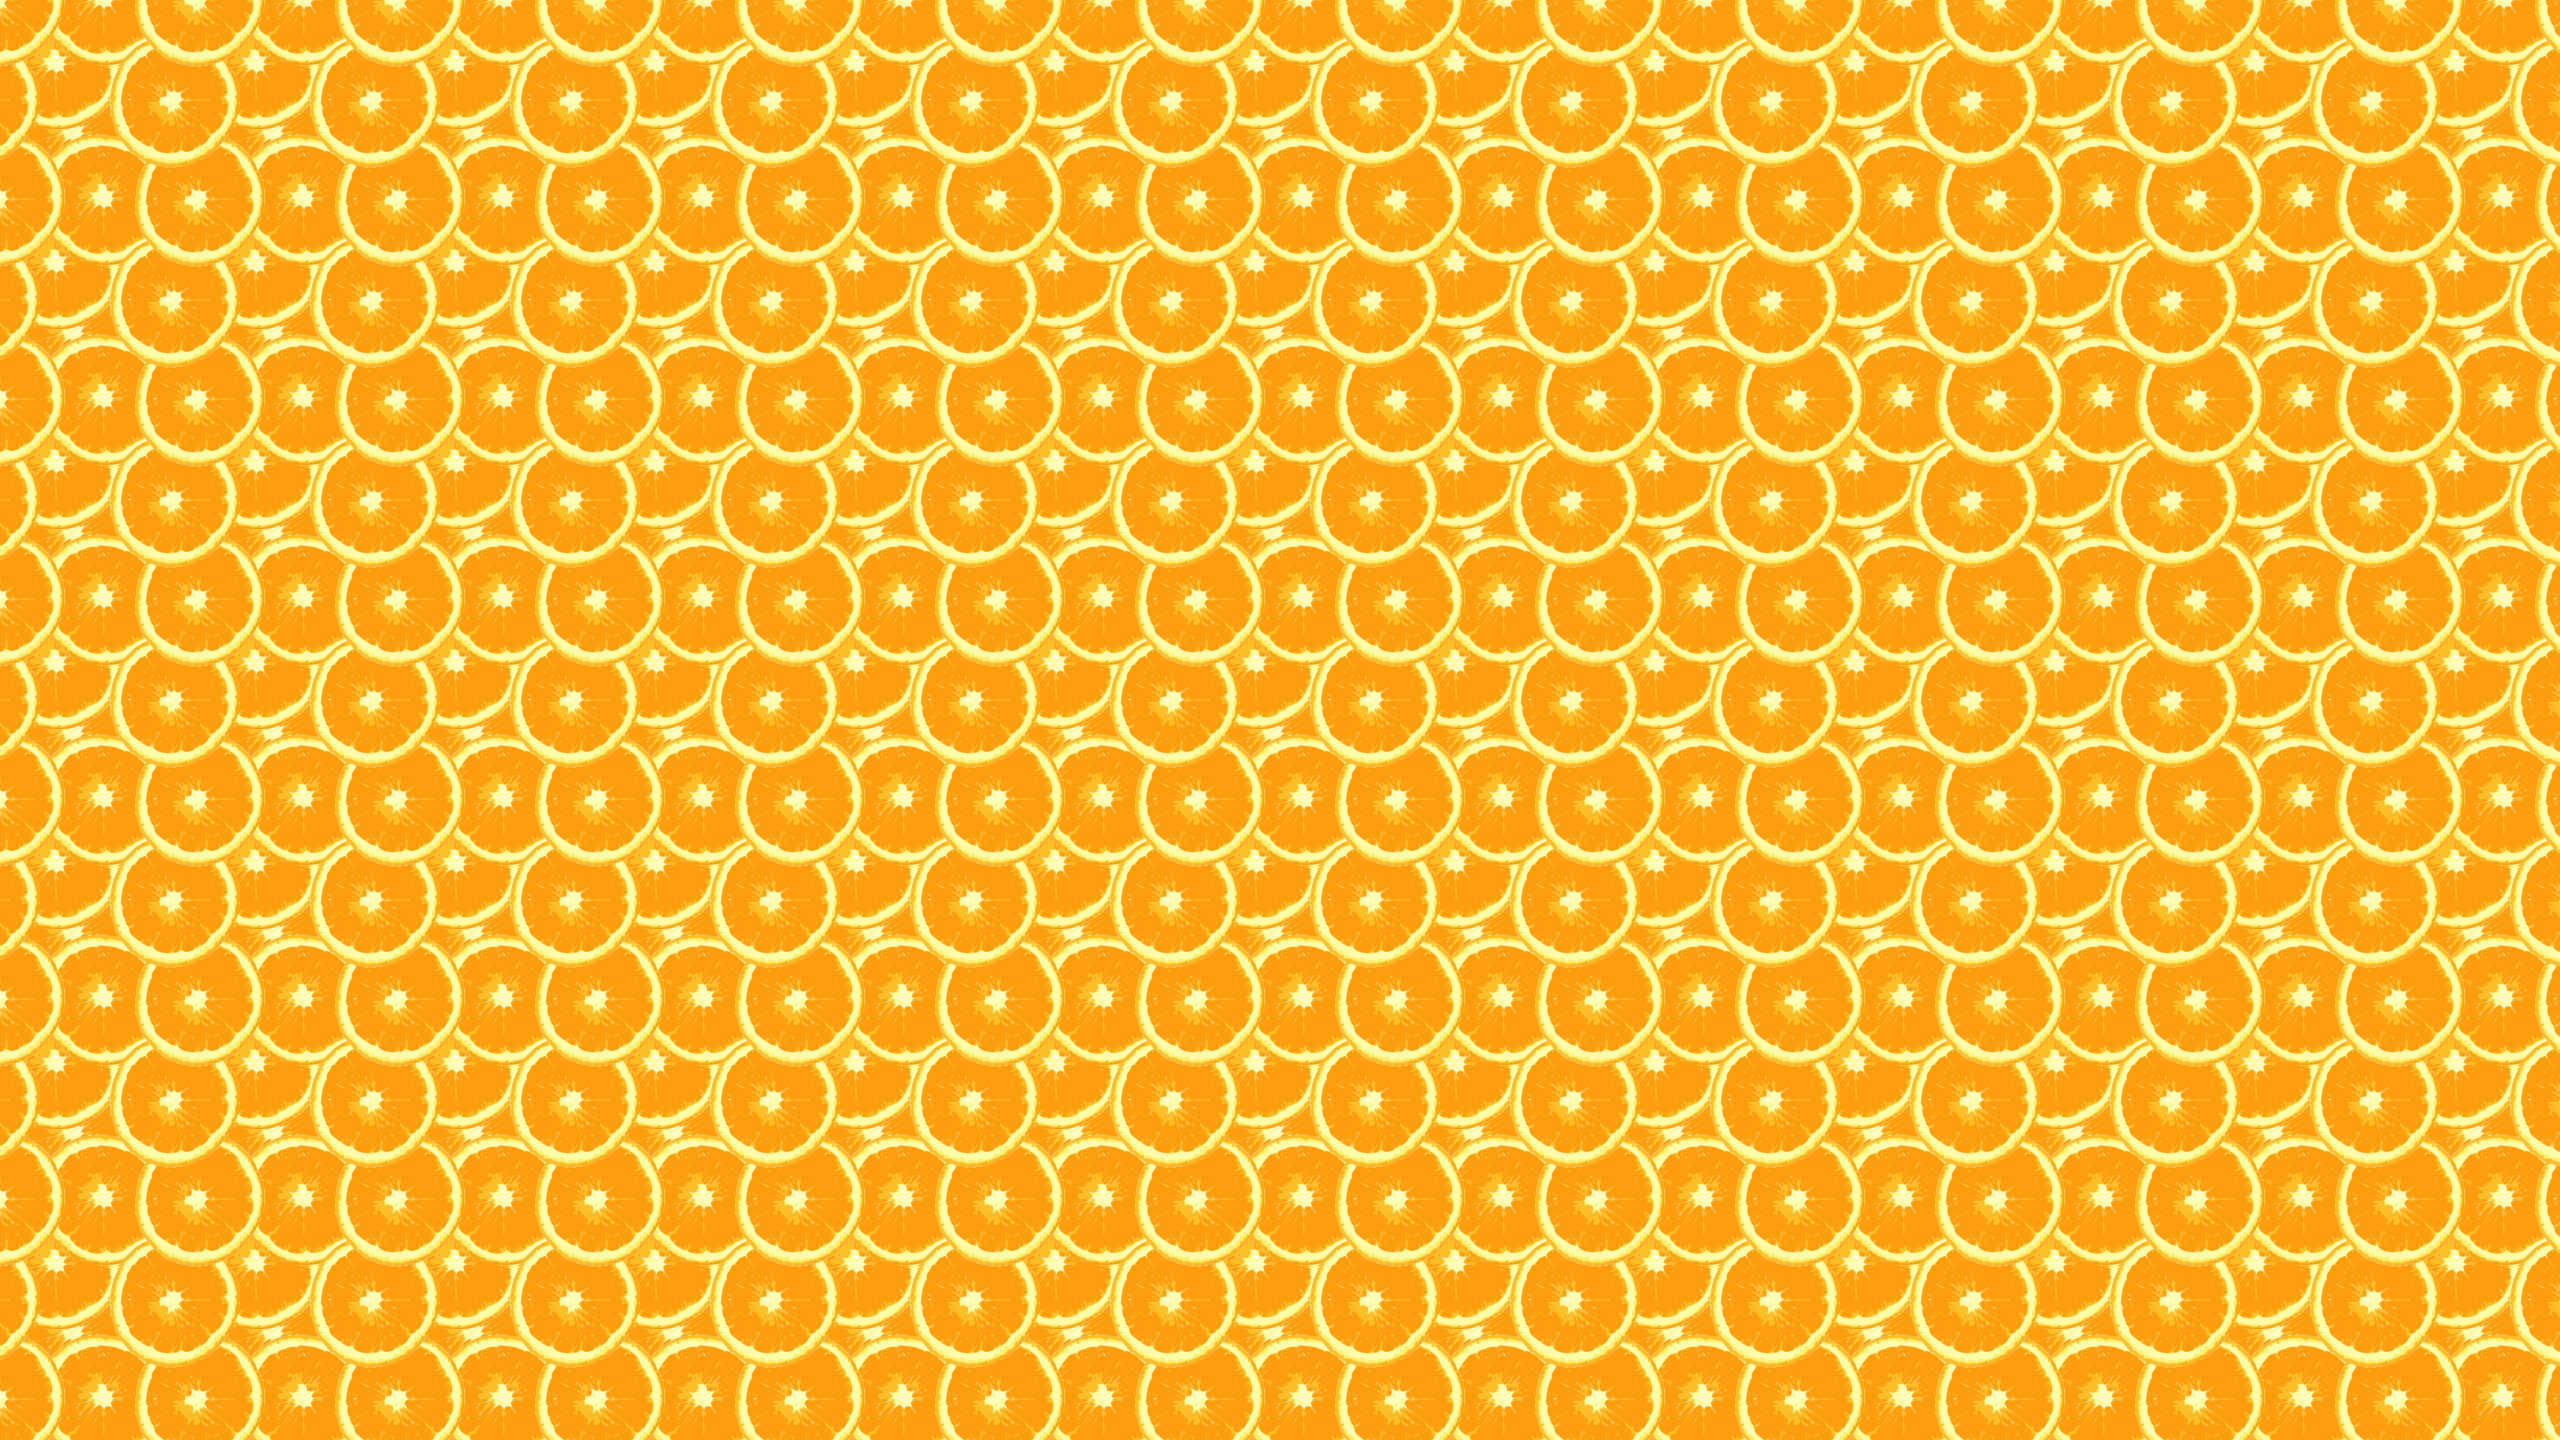 this Orange Slices Desktop Wallpaper is easy Just save the wallpaper 2560x1440